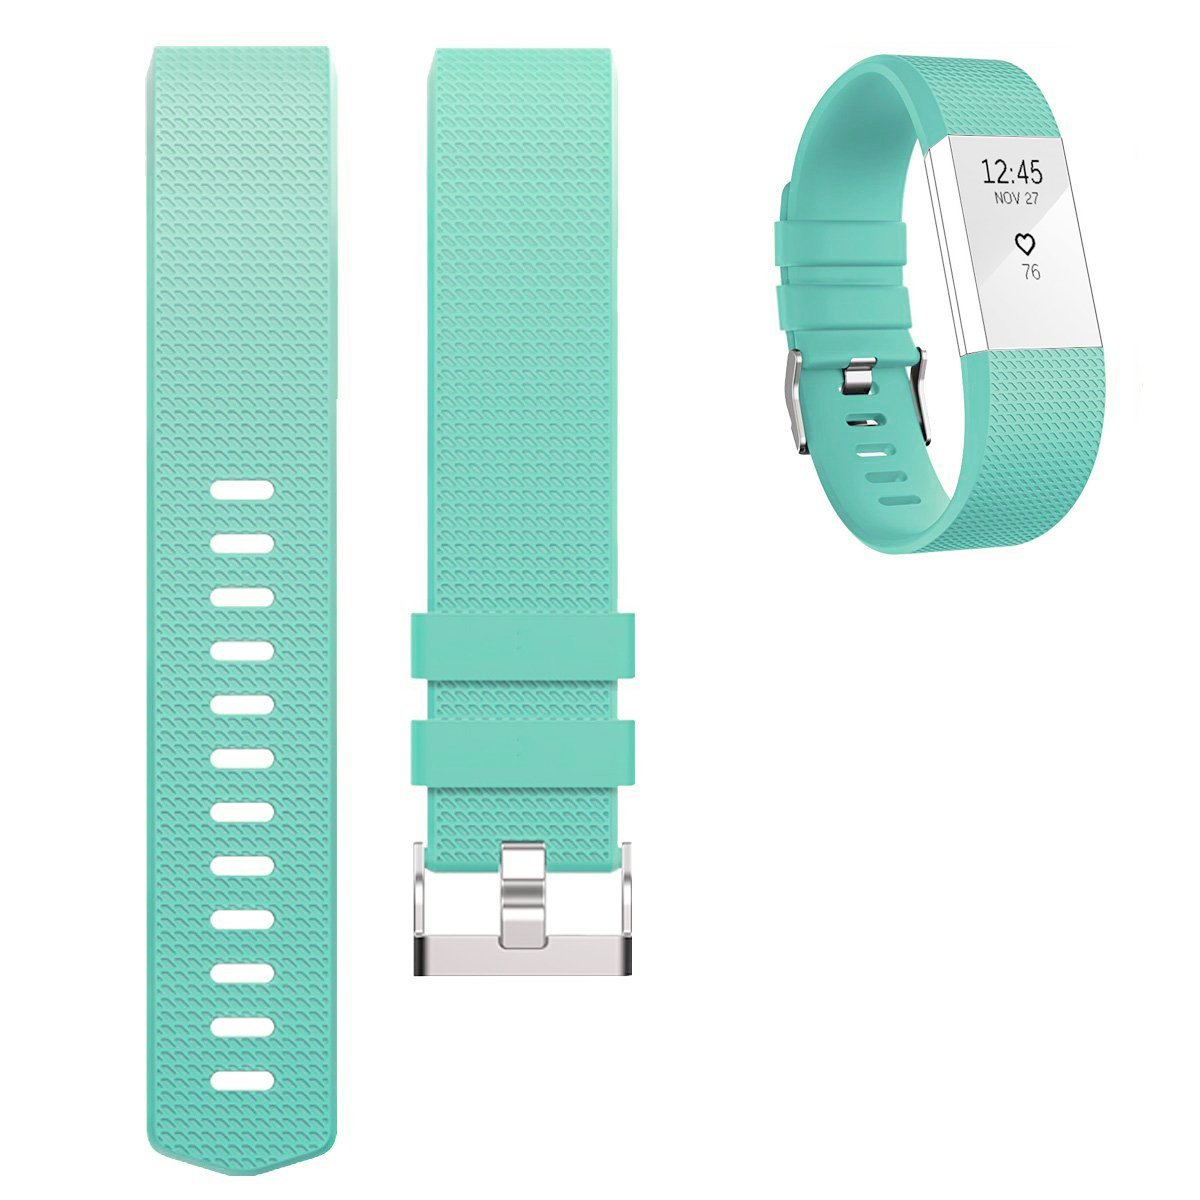 """Fitbit Charge 2 Silicone Band Mint Green,Ztotop Soft Silicone Adjustable Replacement Sport Strap Band for Fitbit Charge 2 Heart Rate + Fitness Wristband 5.70""""-8.26"""" (145mm-210mm)"""